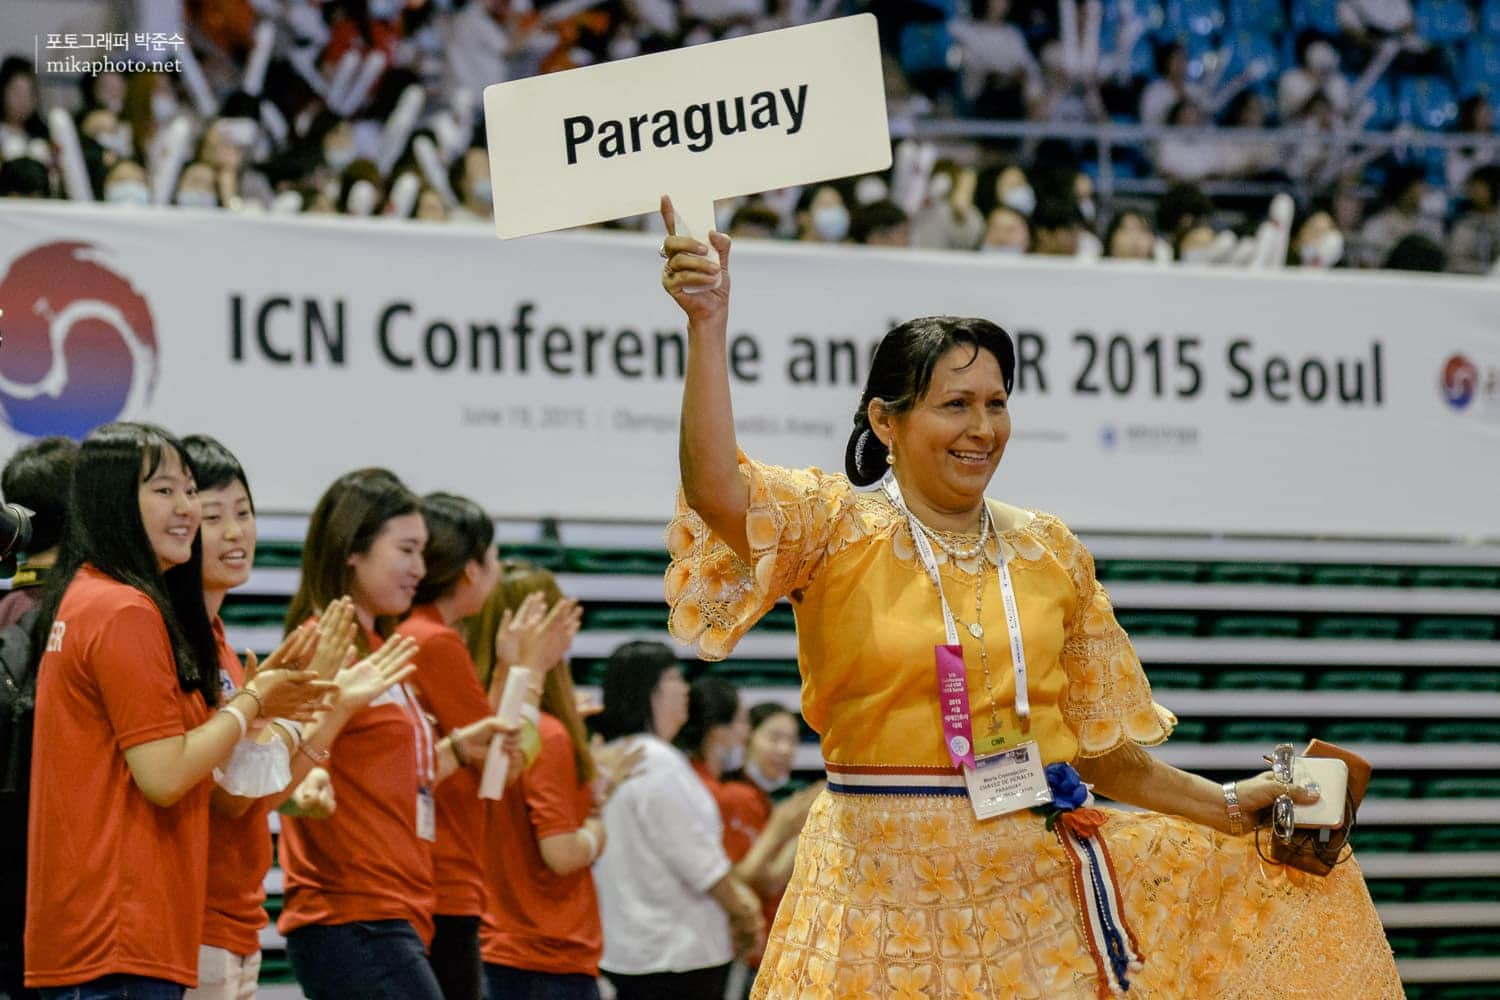 Delegate from Paraguay